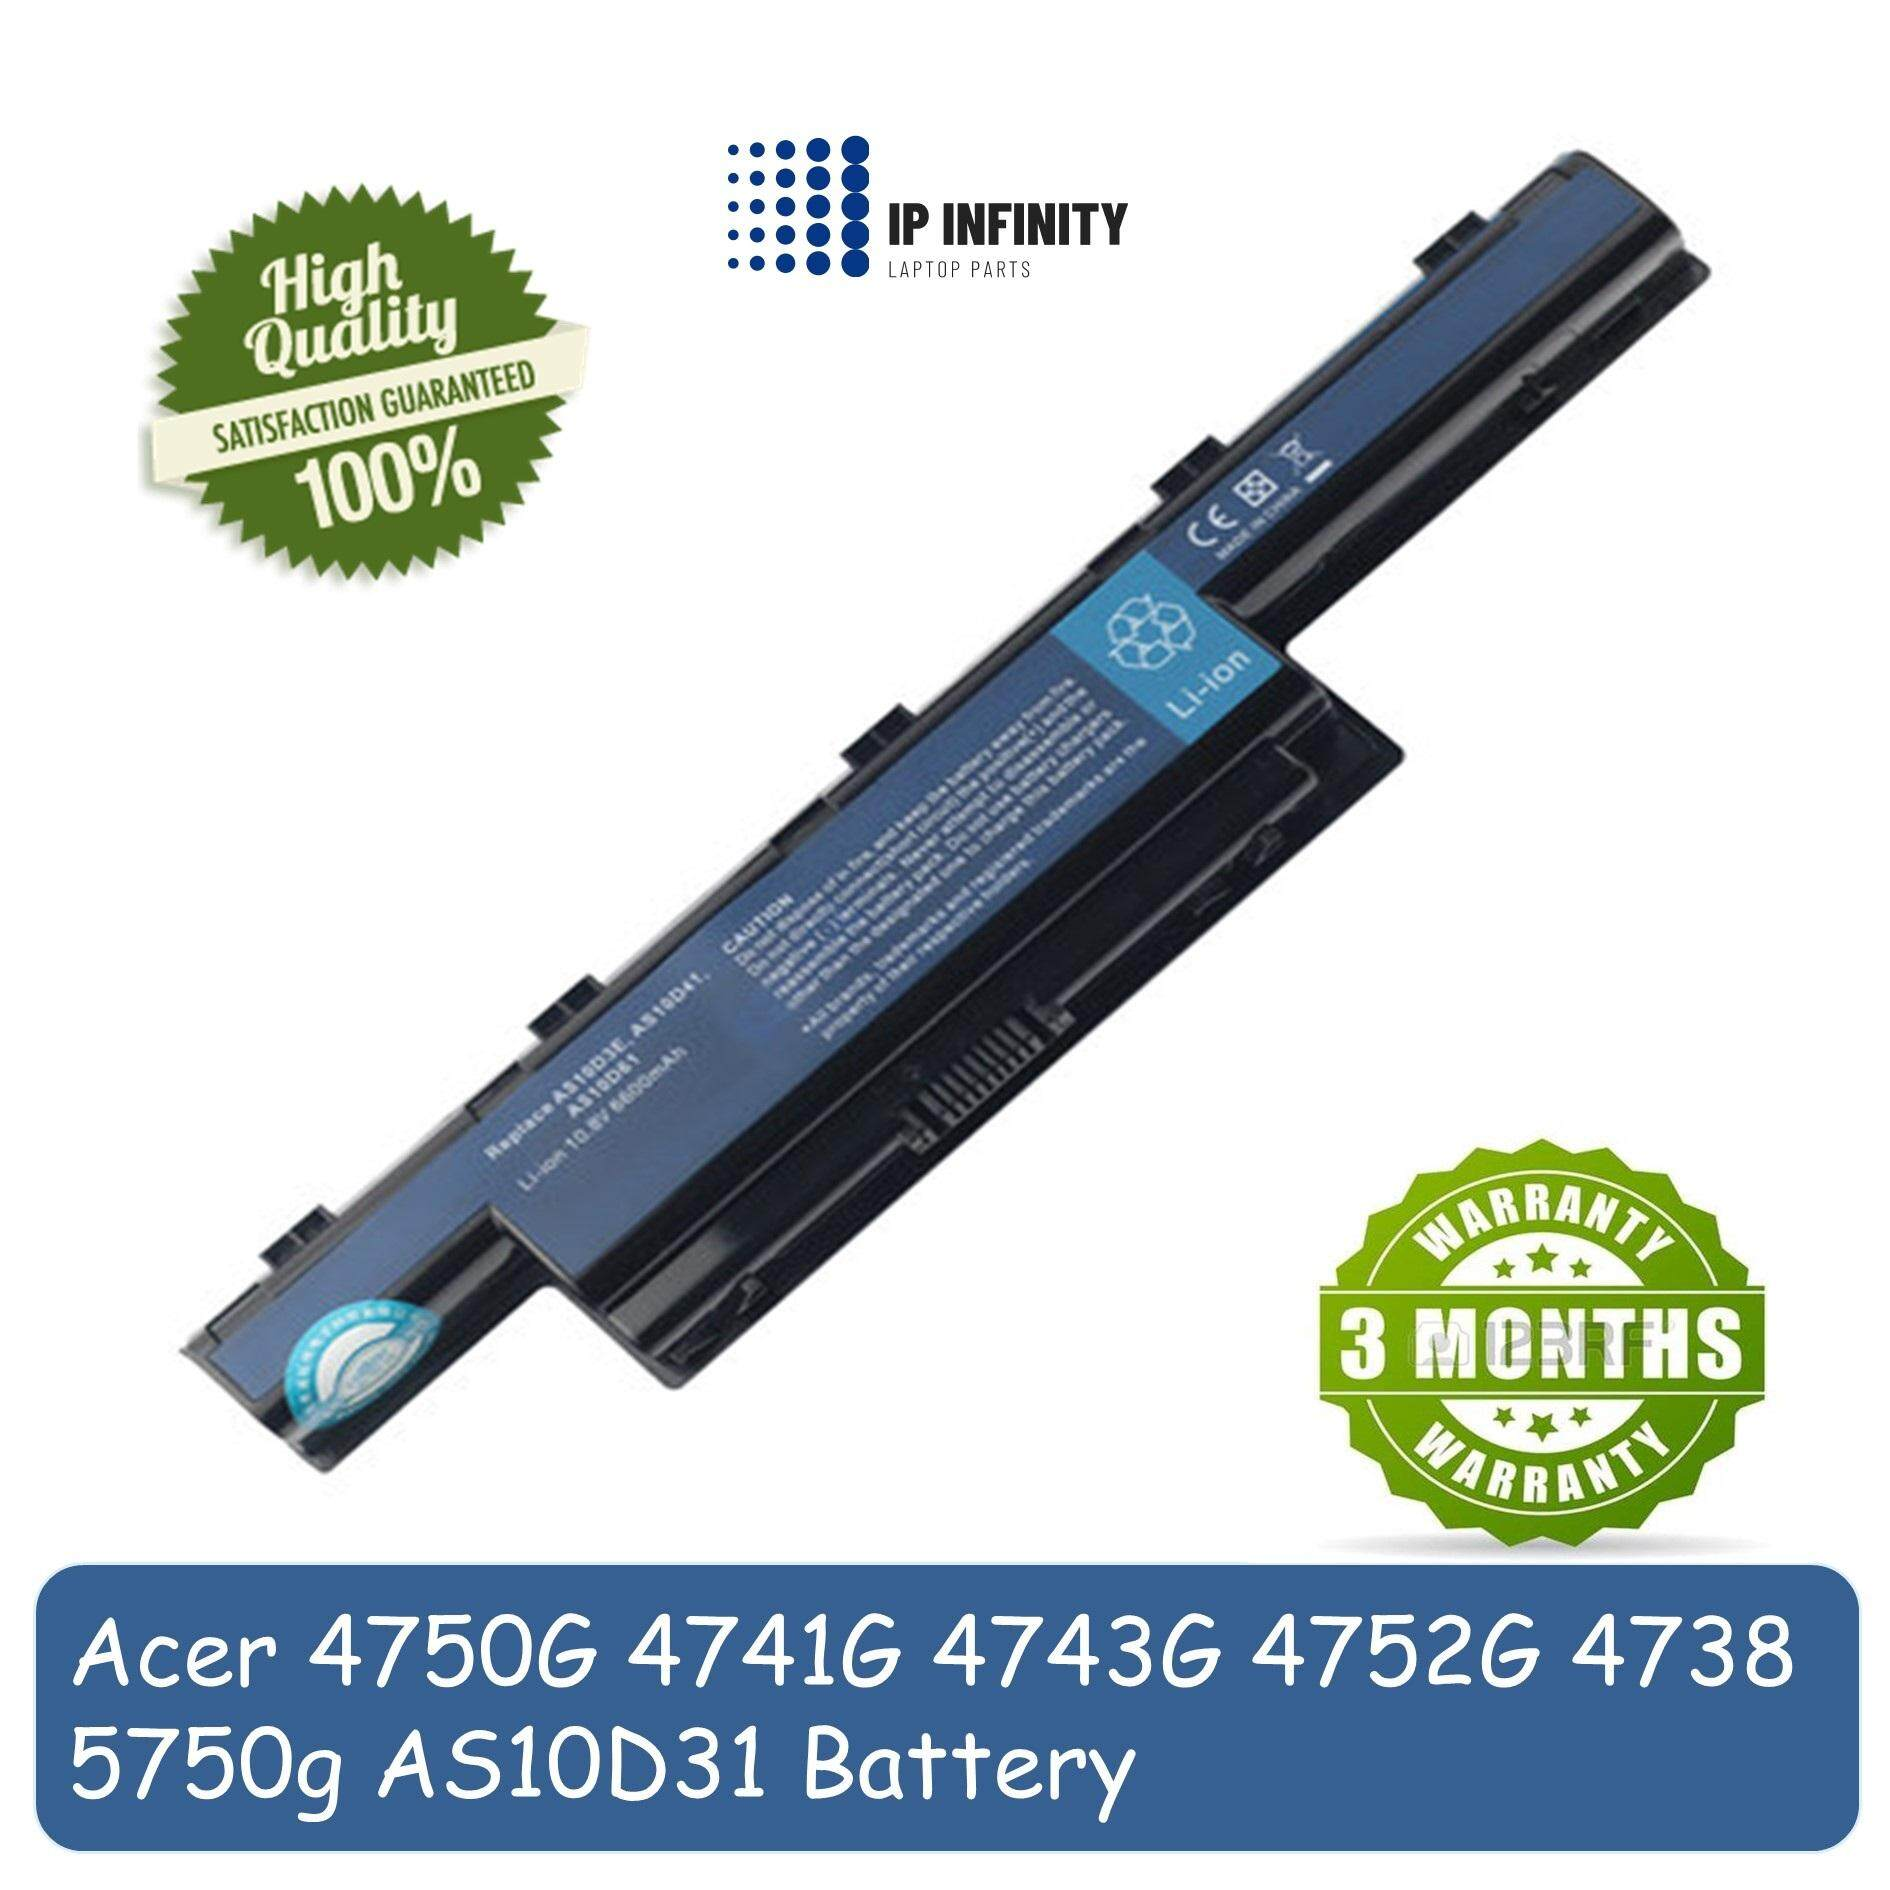 Acer Aspire 5750 / 5750G / 5755 / 5755G Laptop Battery Malaysia